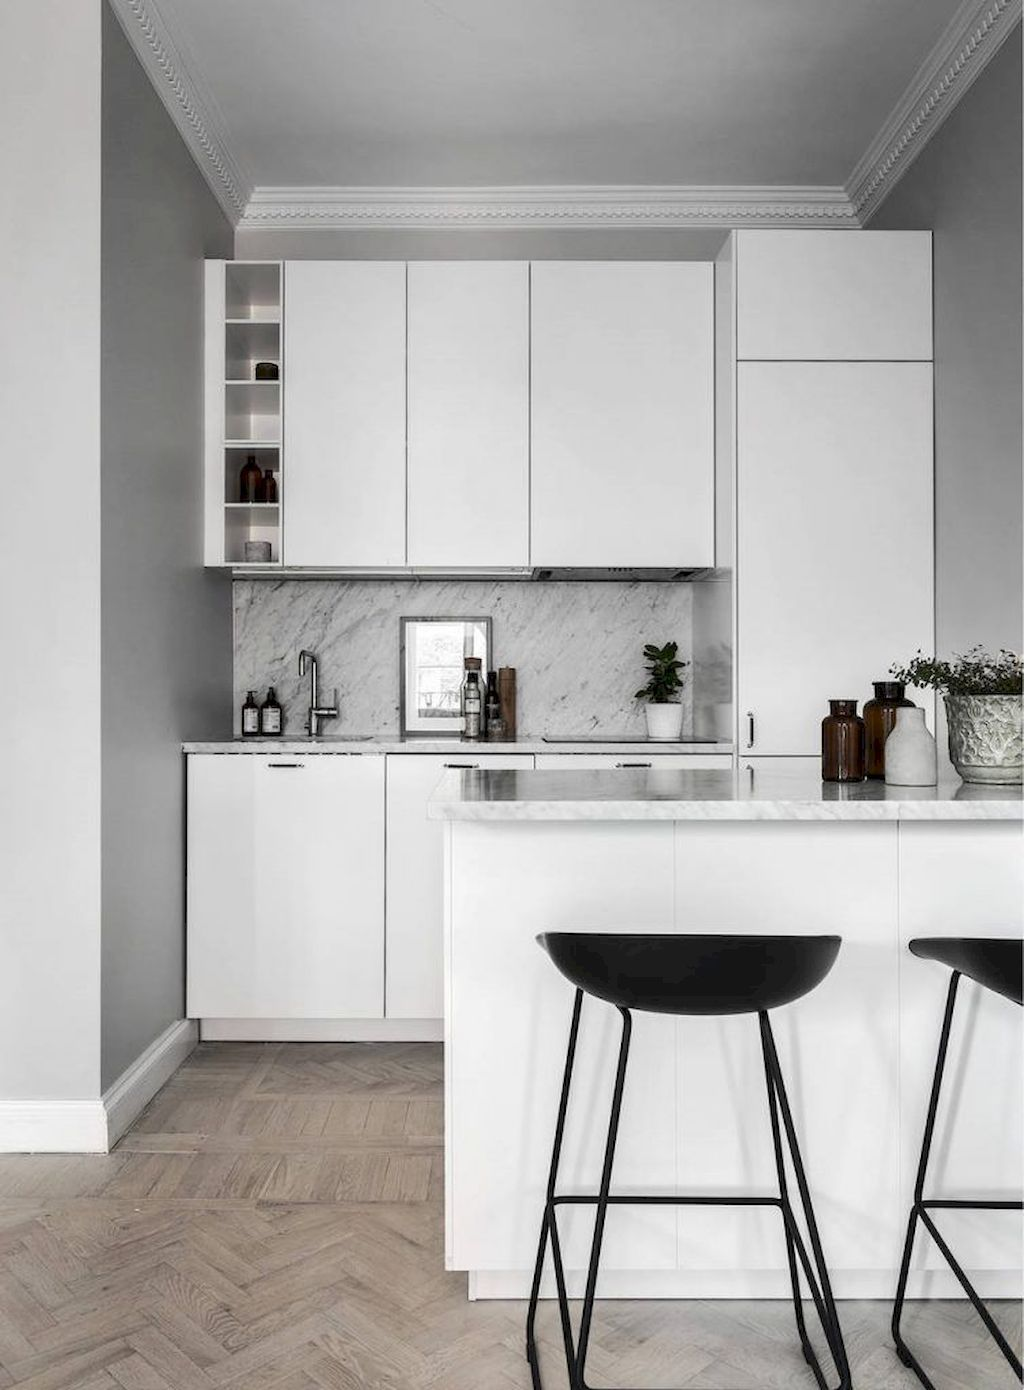 Pin by Juliann Miley on Designs | Small apartment kitchen ...